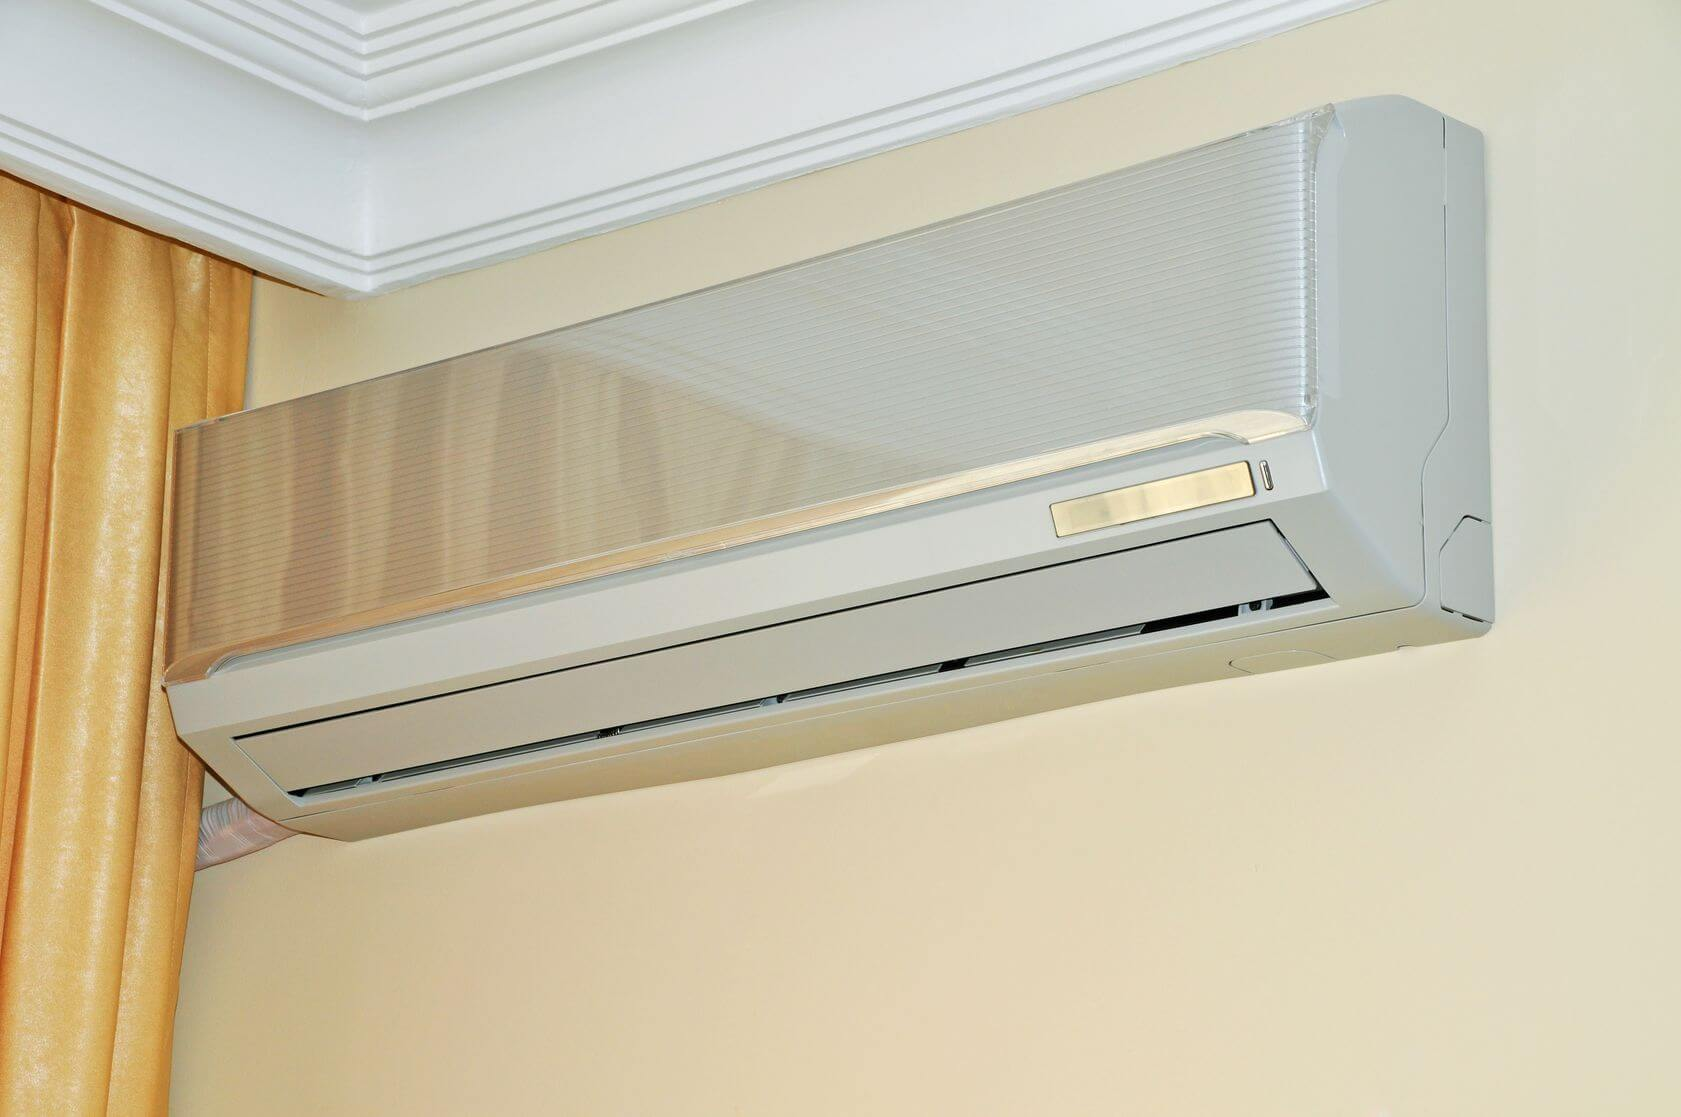 5 benefits of a ductless air conditioner system - Ductless Air System